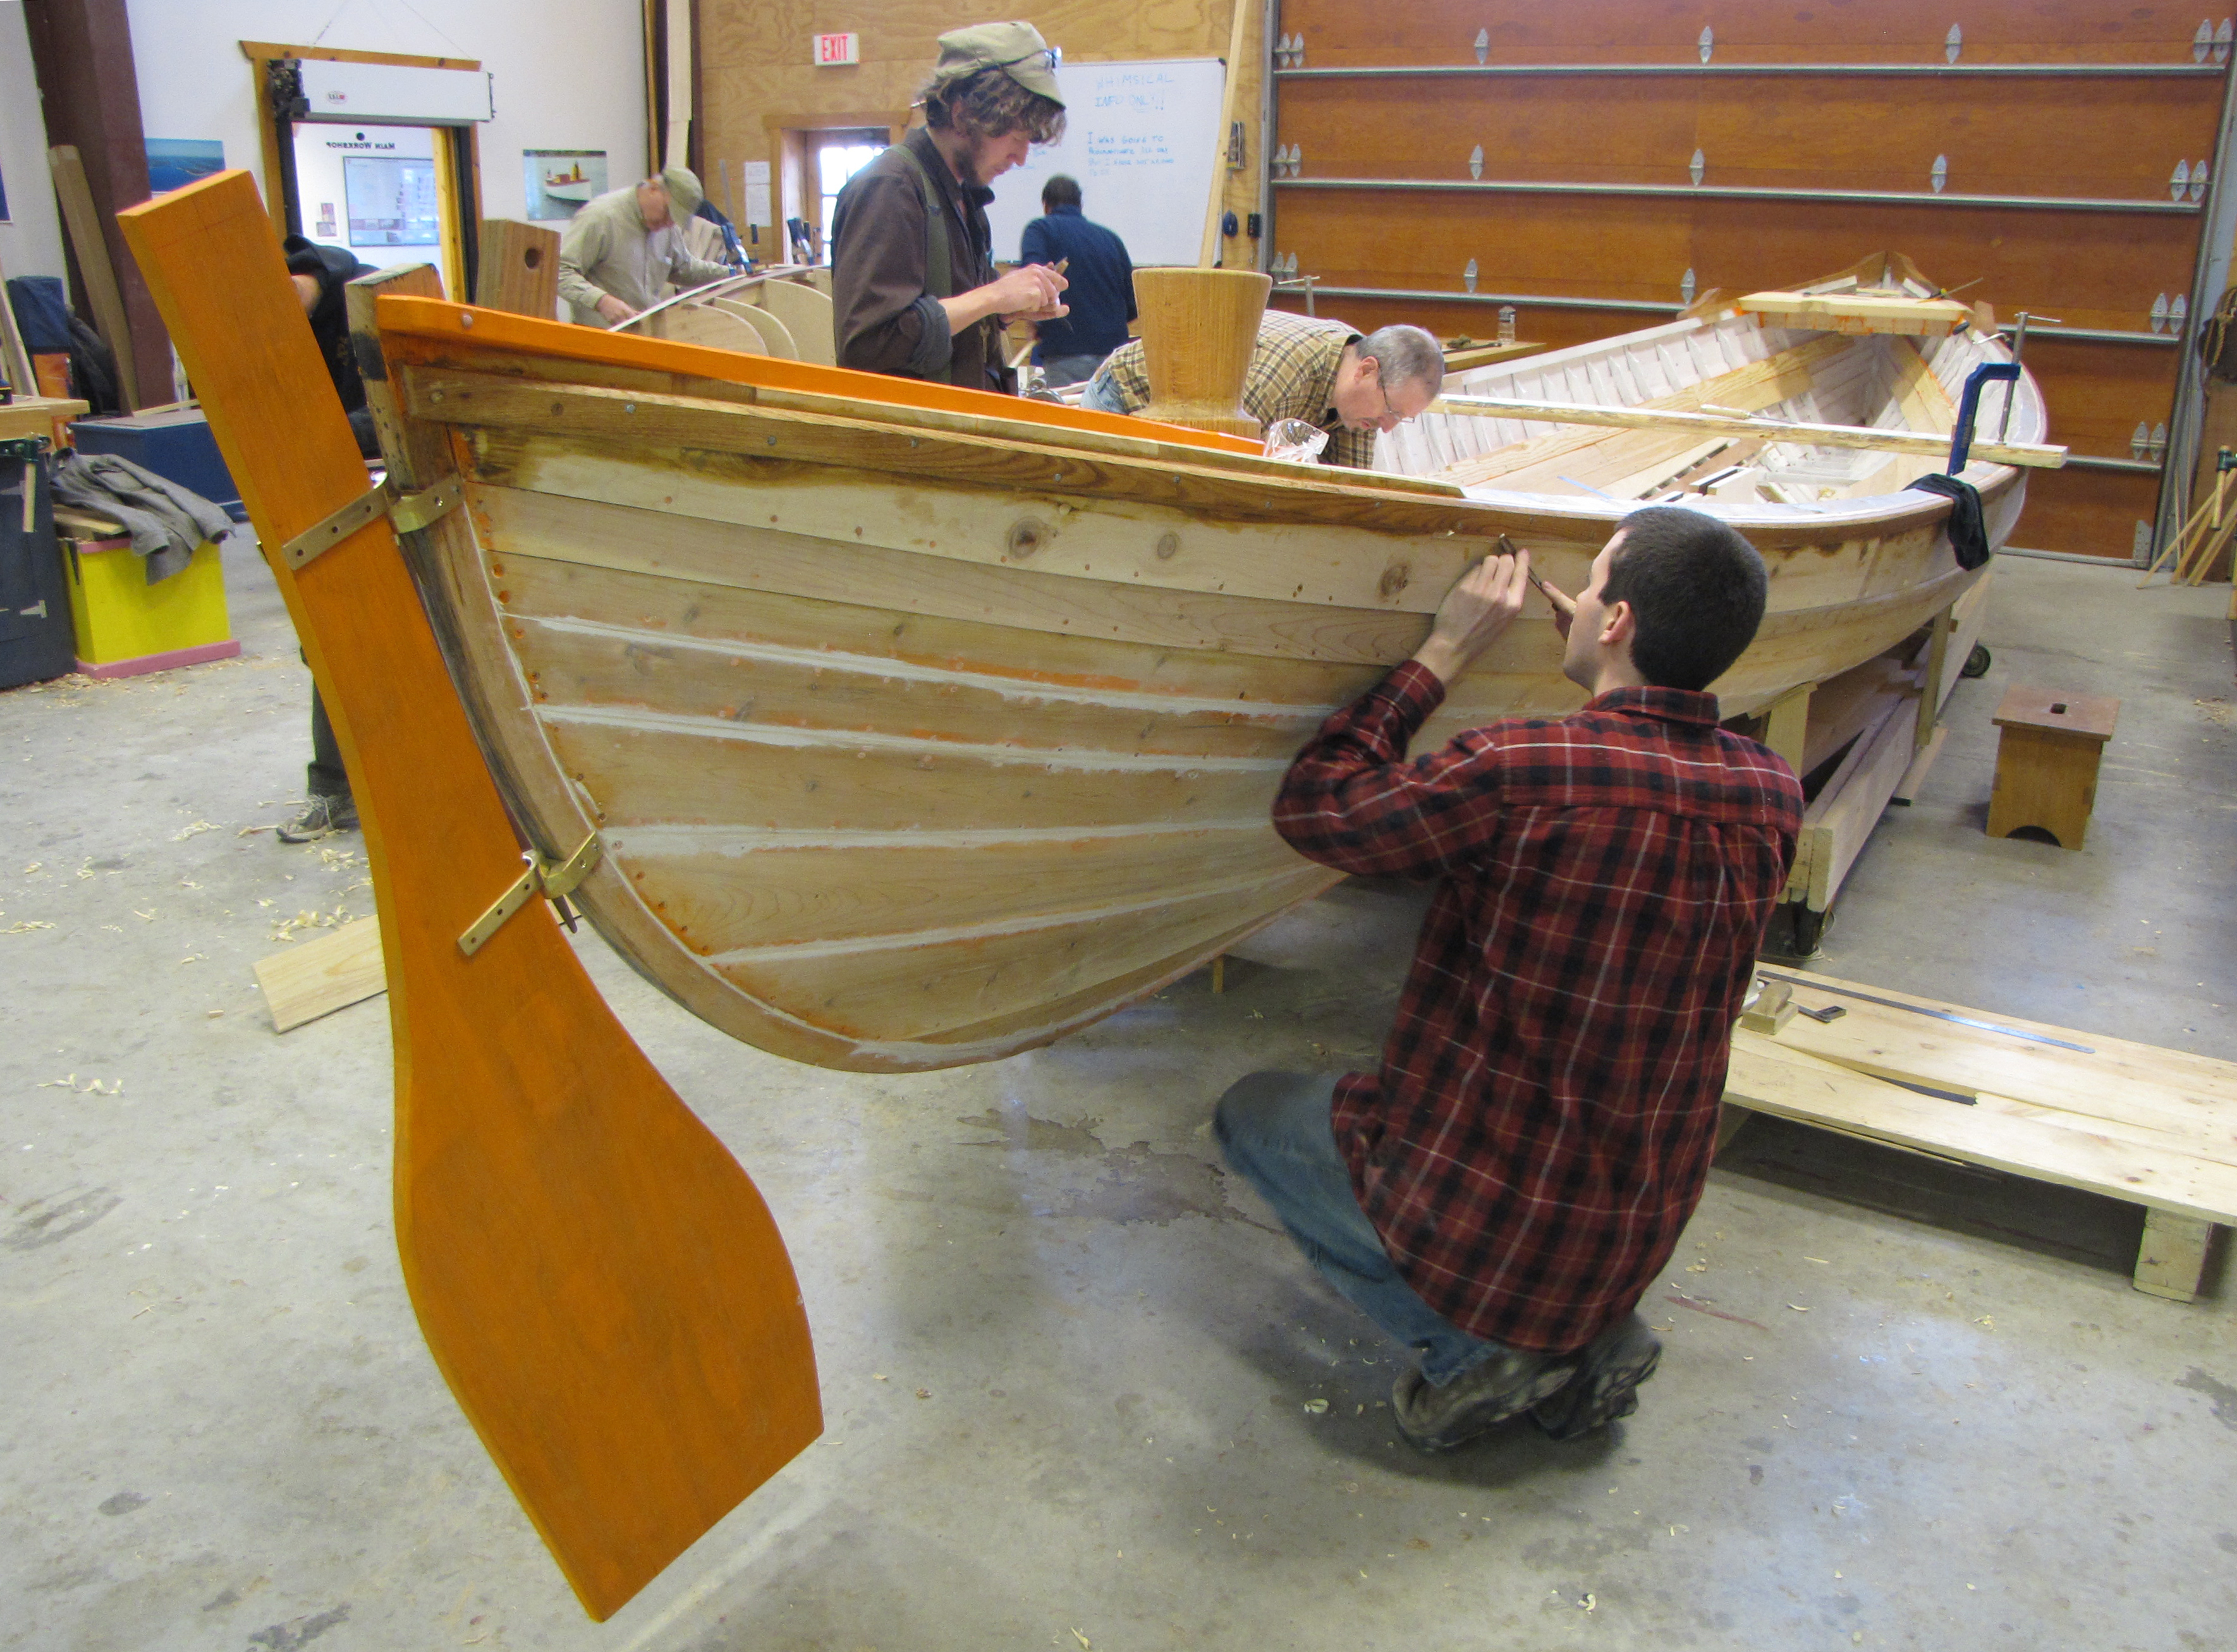 Building a whaleboat: Students tackle unusual project at Upper ...